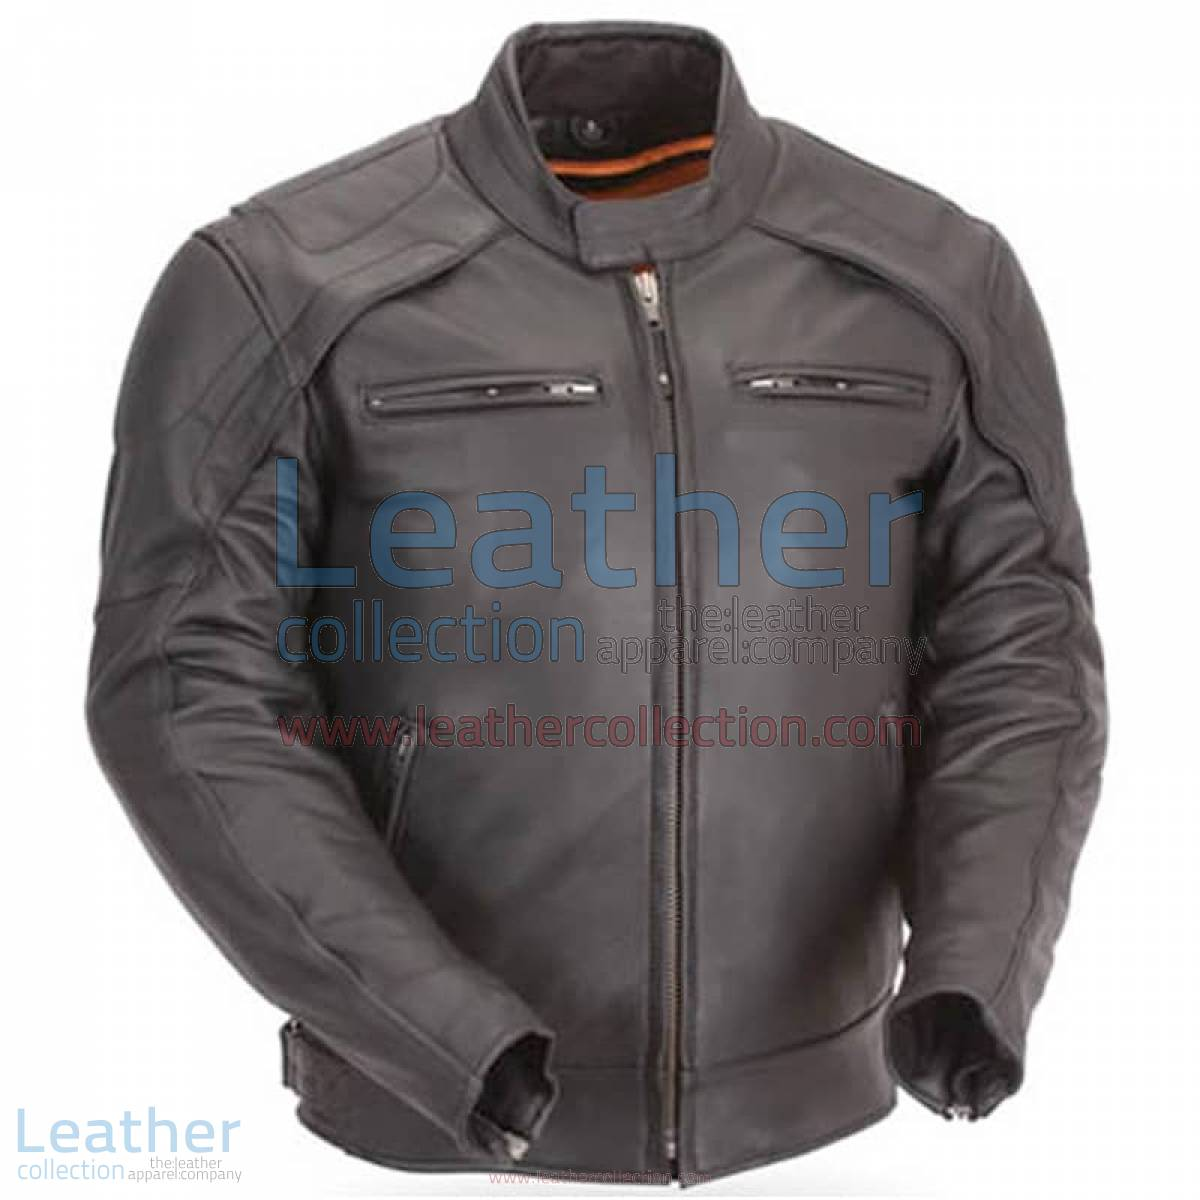 Motorcycle Reflective Piping & Vented Jacket